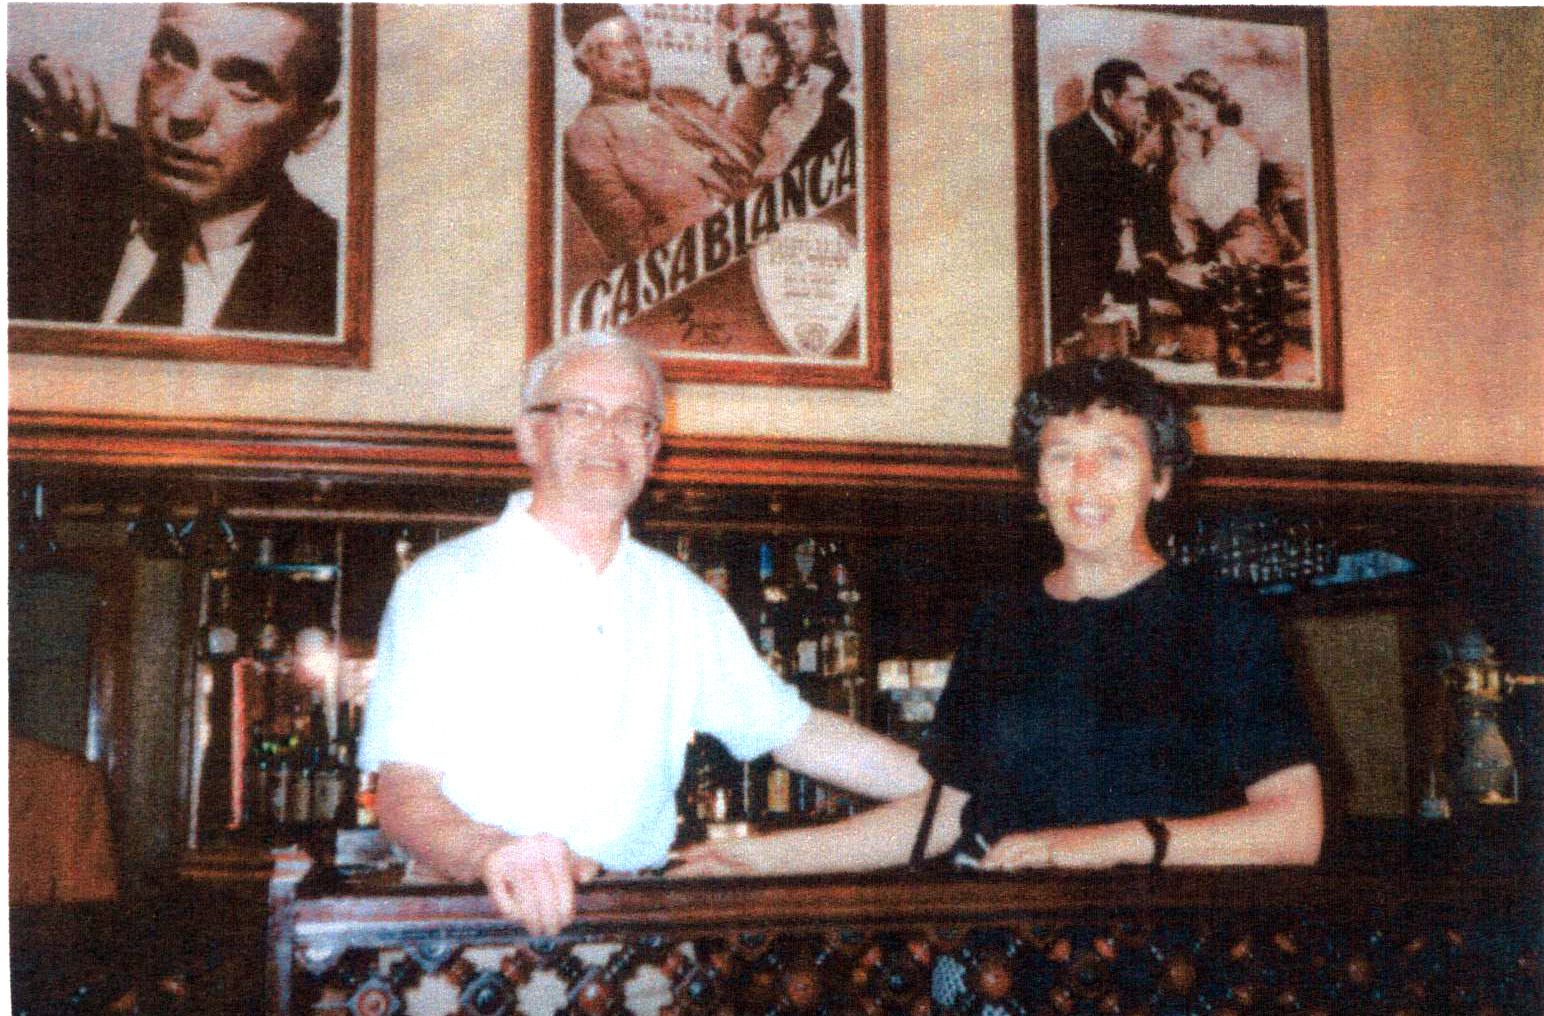 Husband And Wife Visiting Restaurant In Casablanca 1992